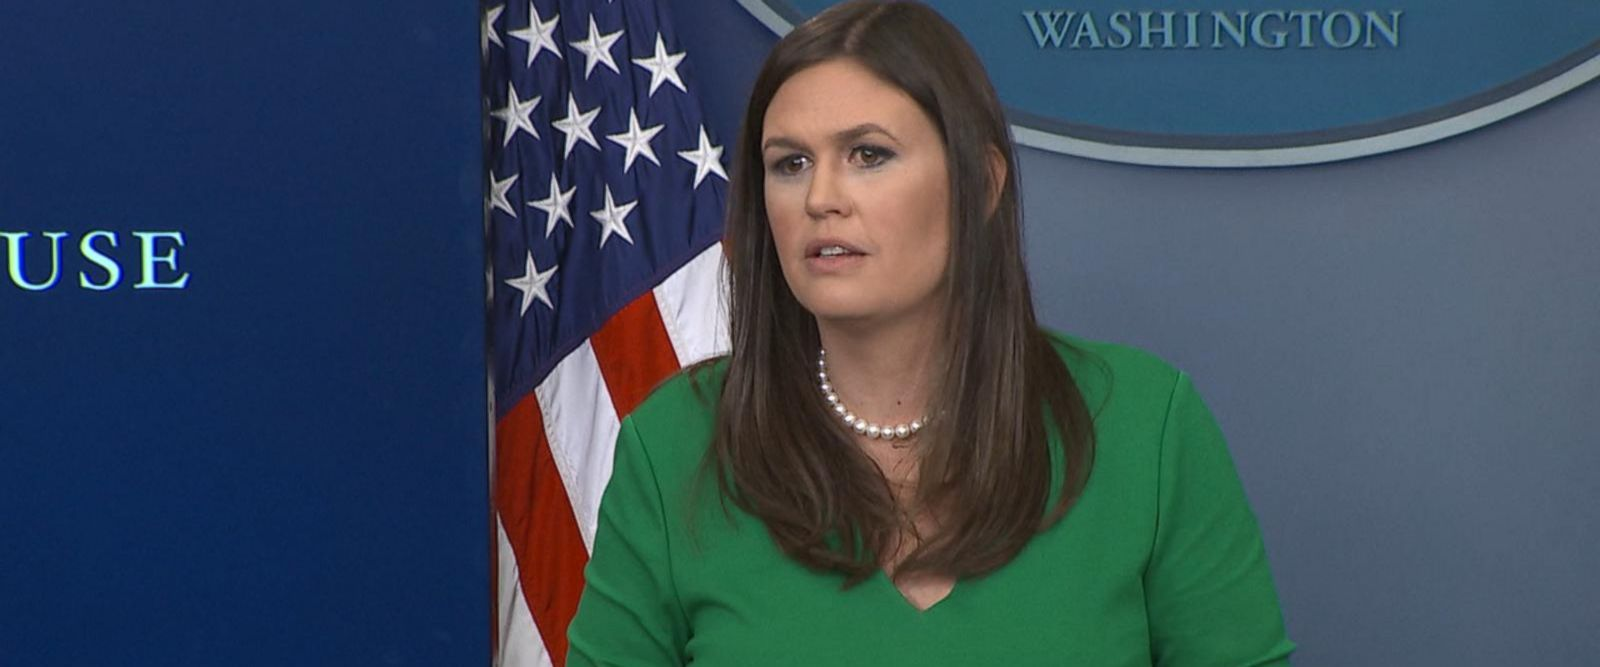 Press secretary Sarah Sanders repeatedly touted the energy of the crowds responding to the president and said nothing about the substance of his remarks.